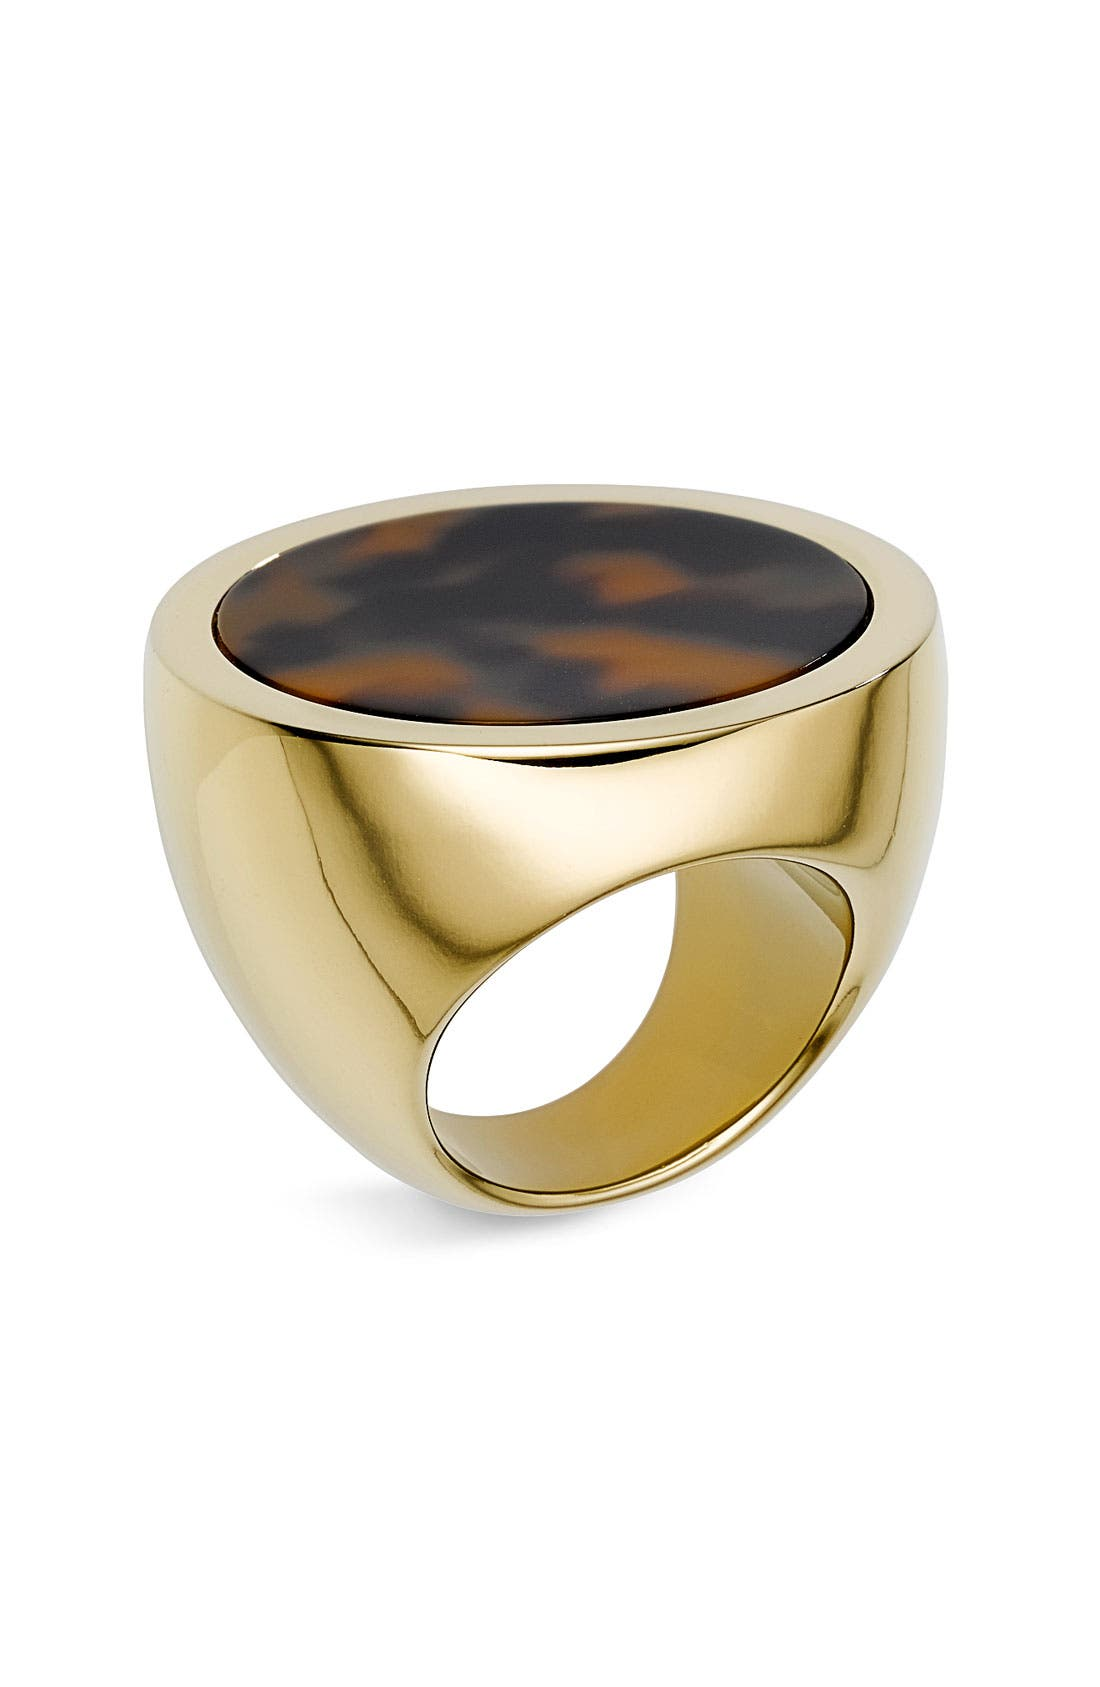 Main Image - Michael Kors Large Slice Ring